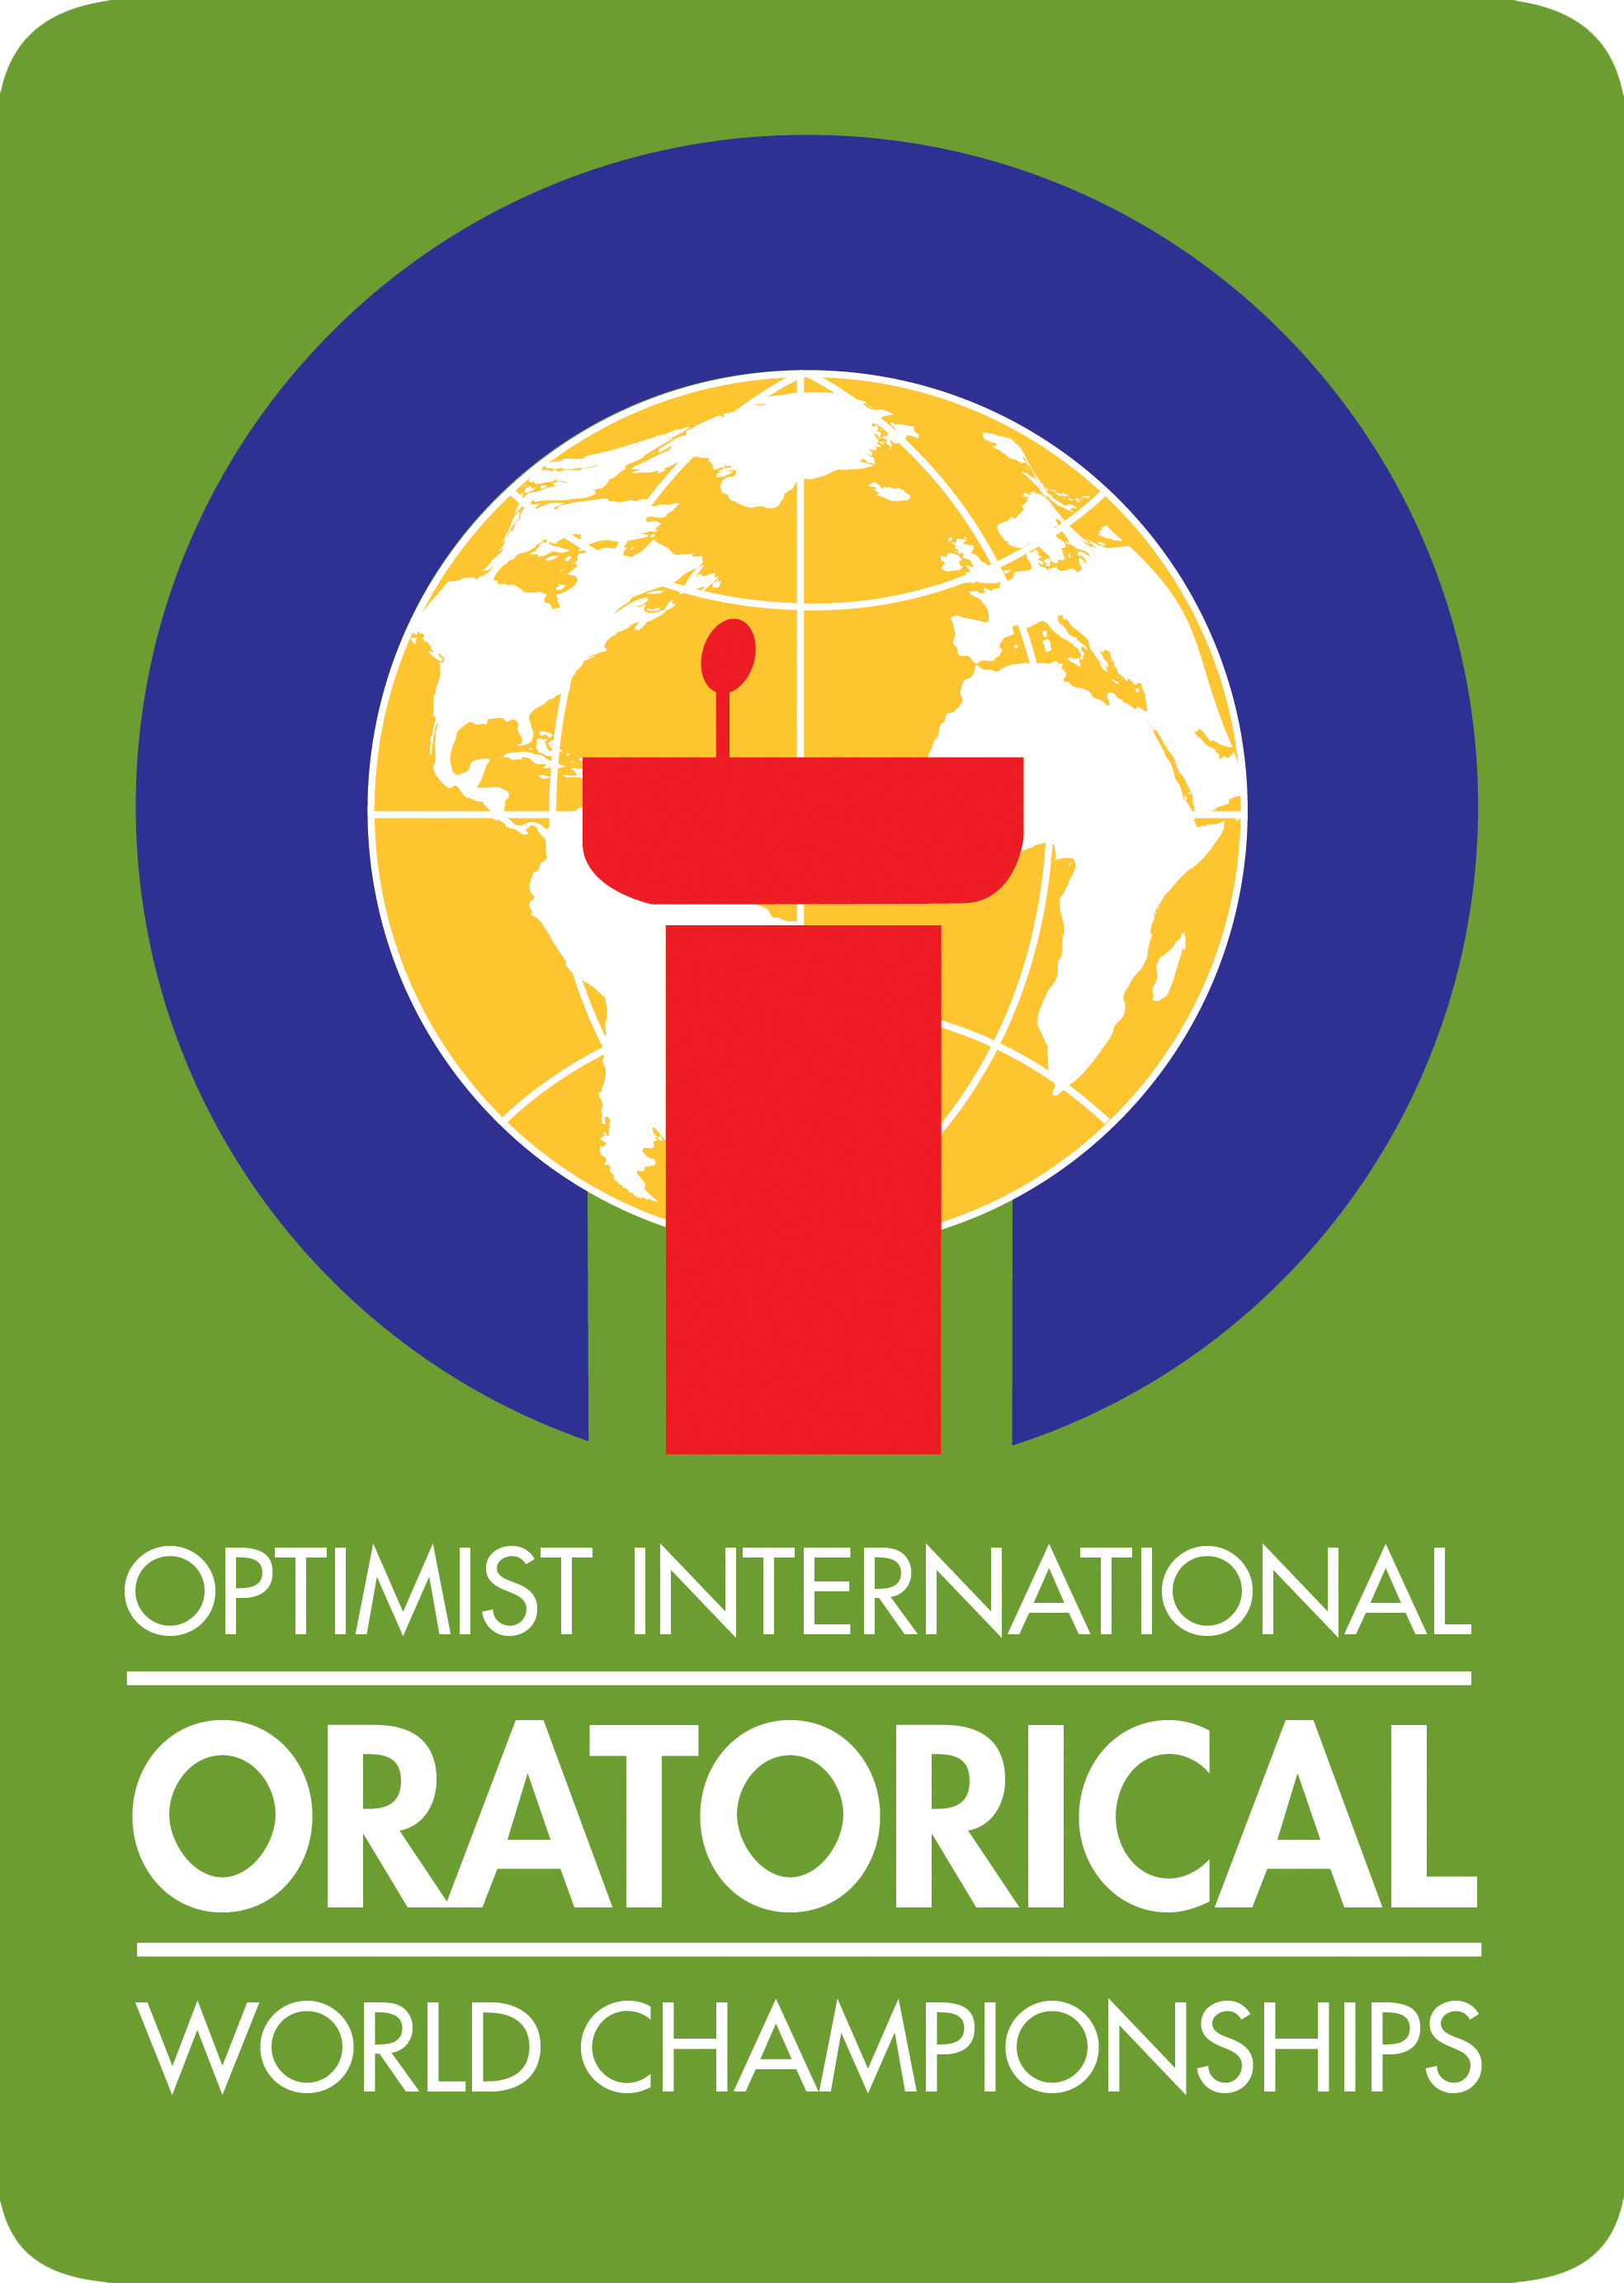 Oratorical Emblem